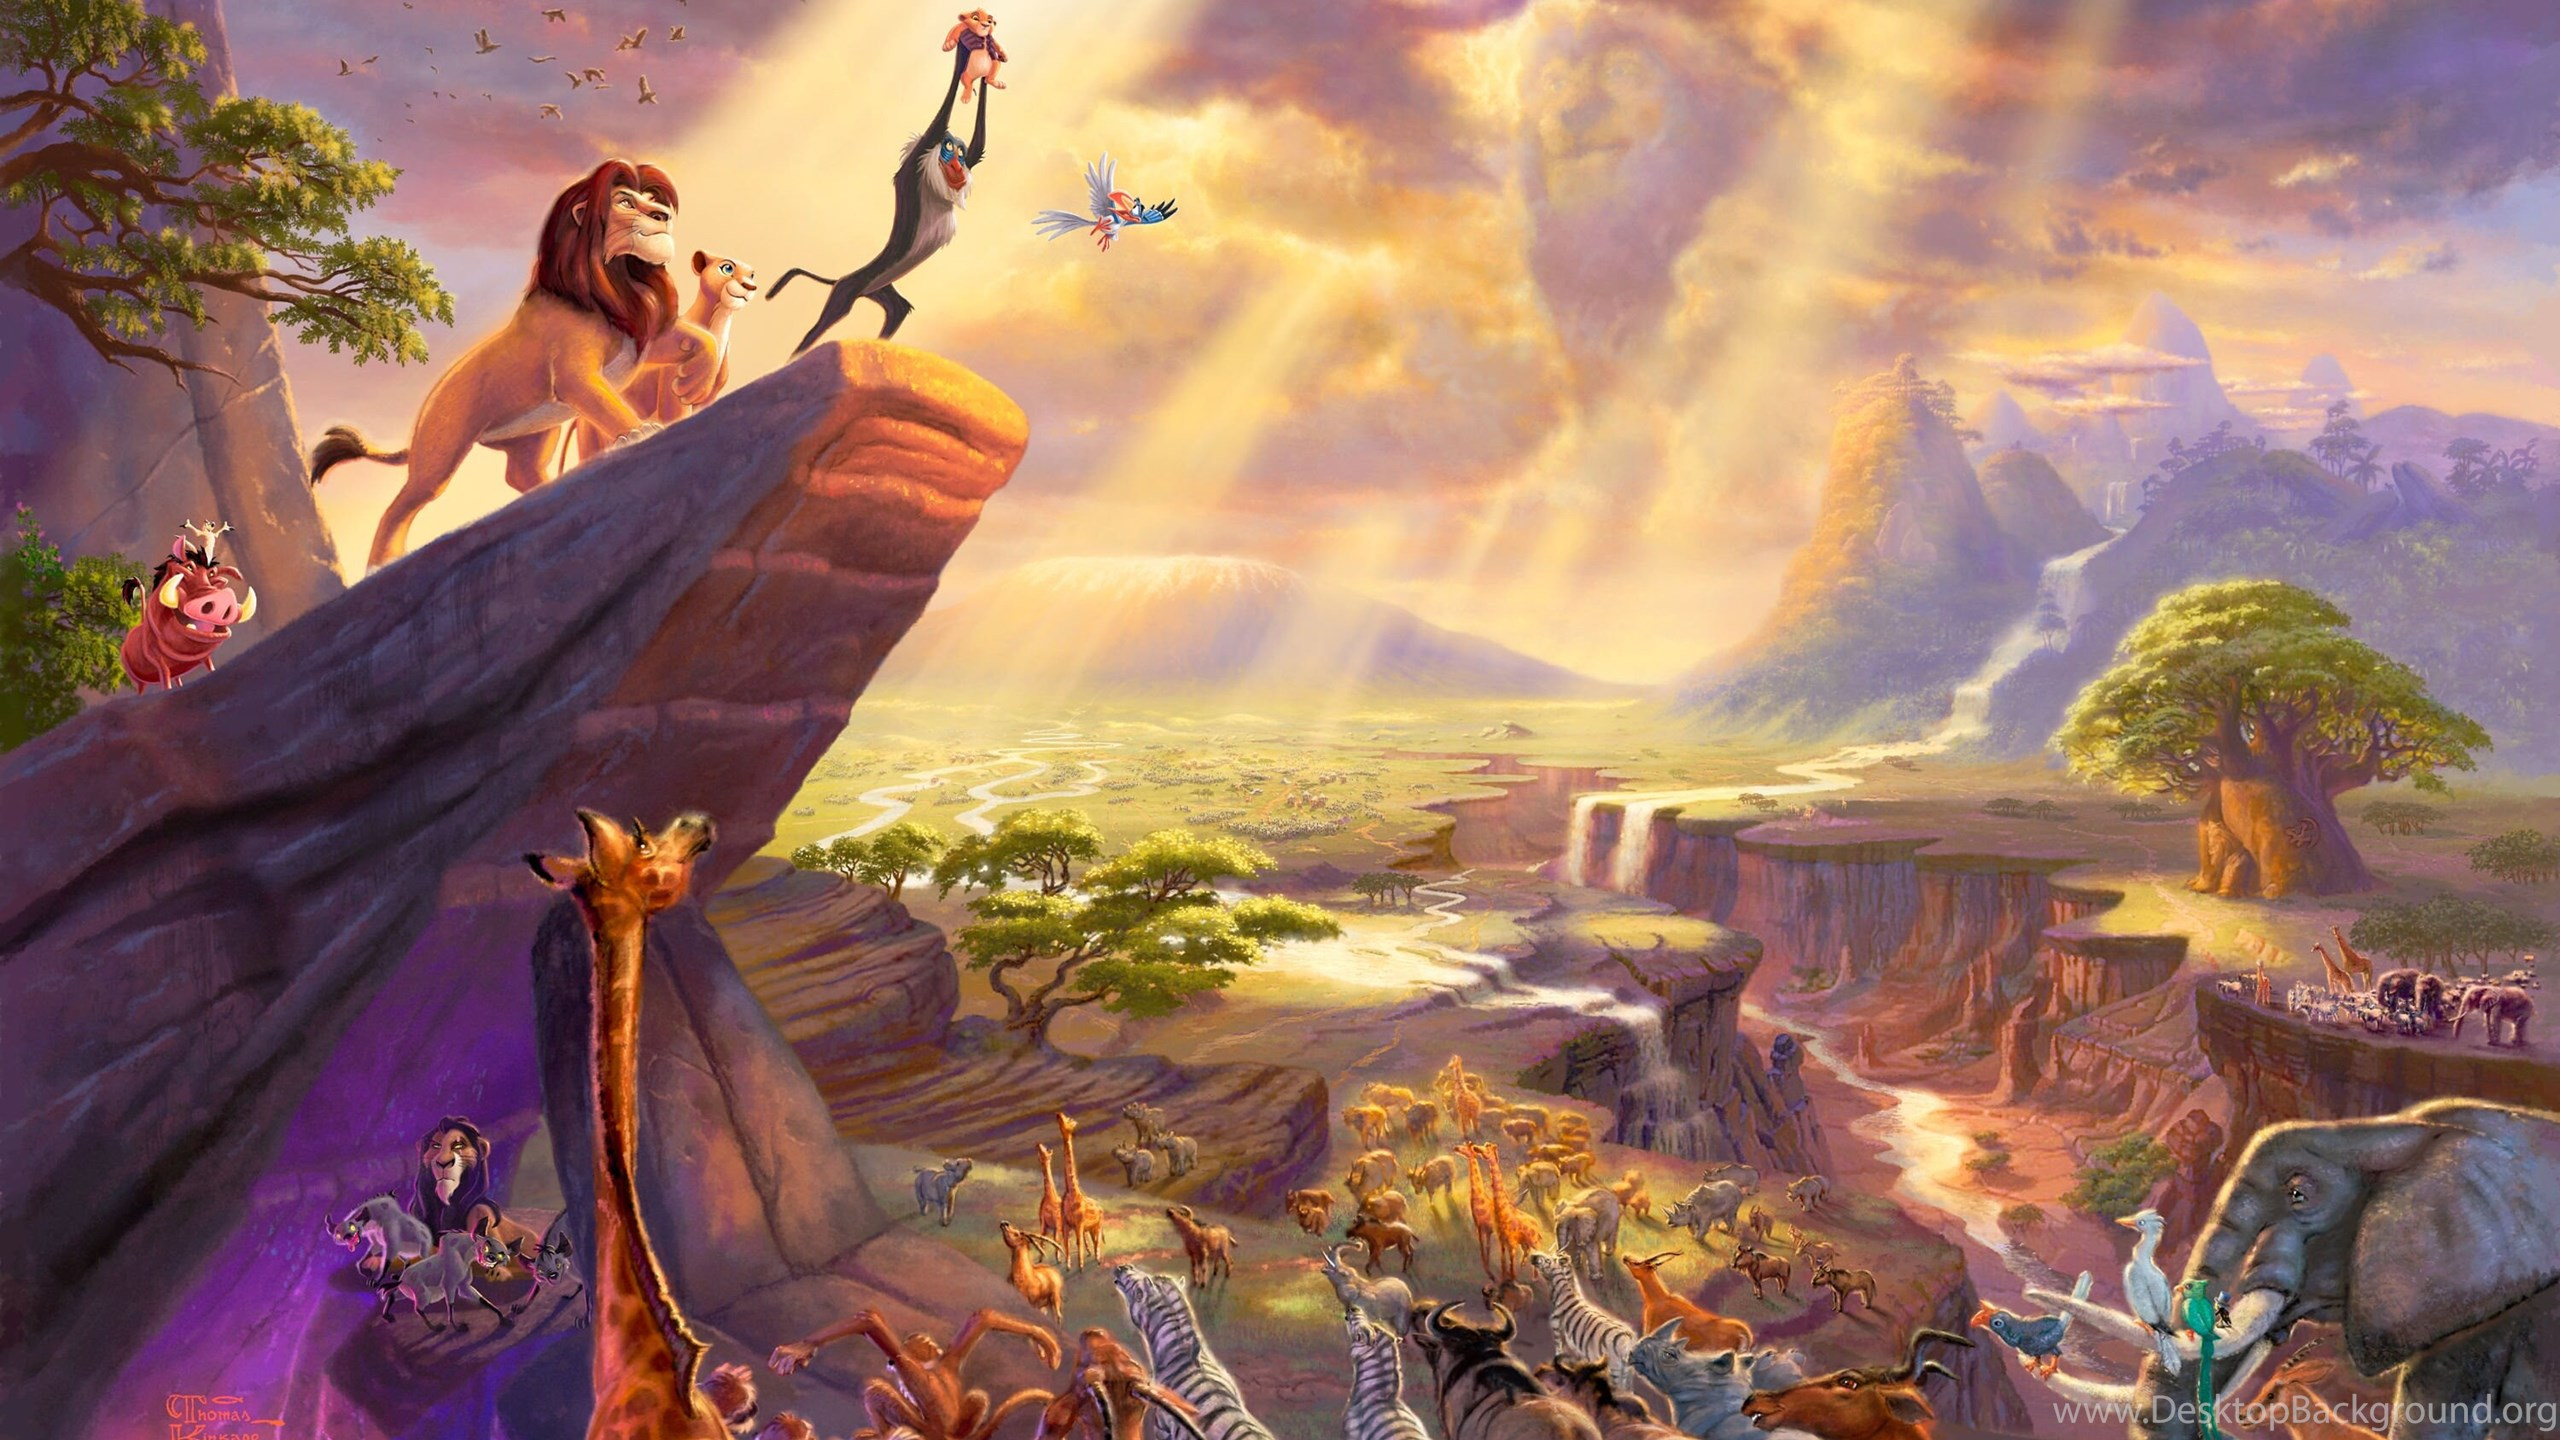 Lion King Cartoon Hd Wallpapers Desktop Background